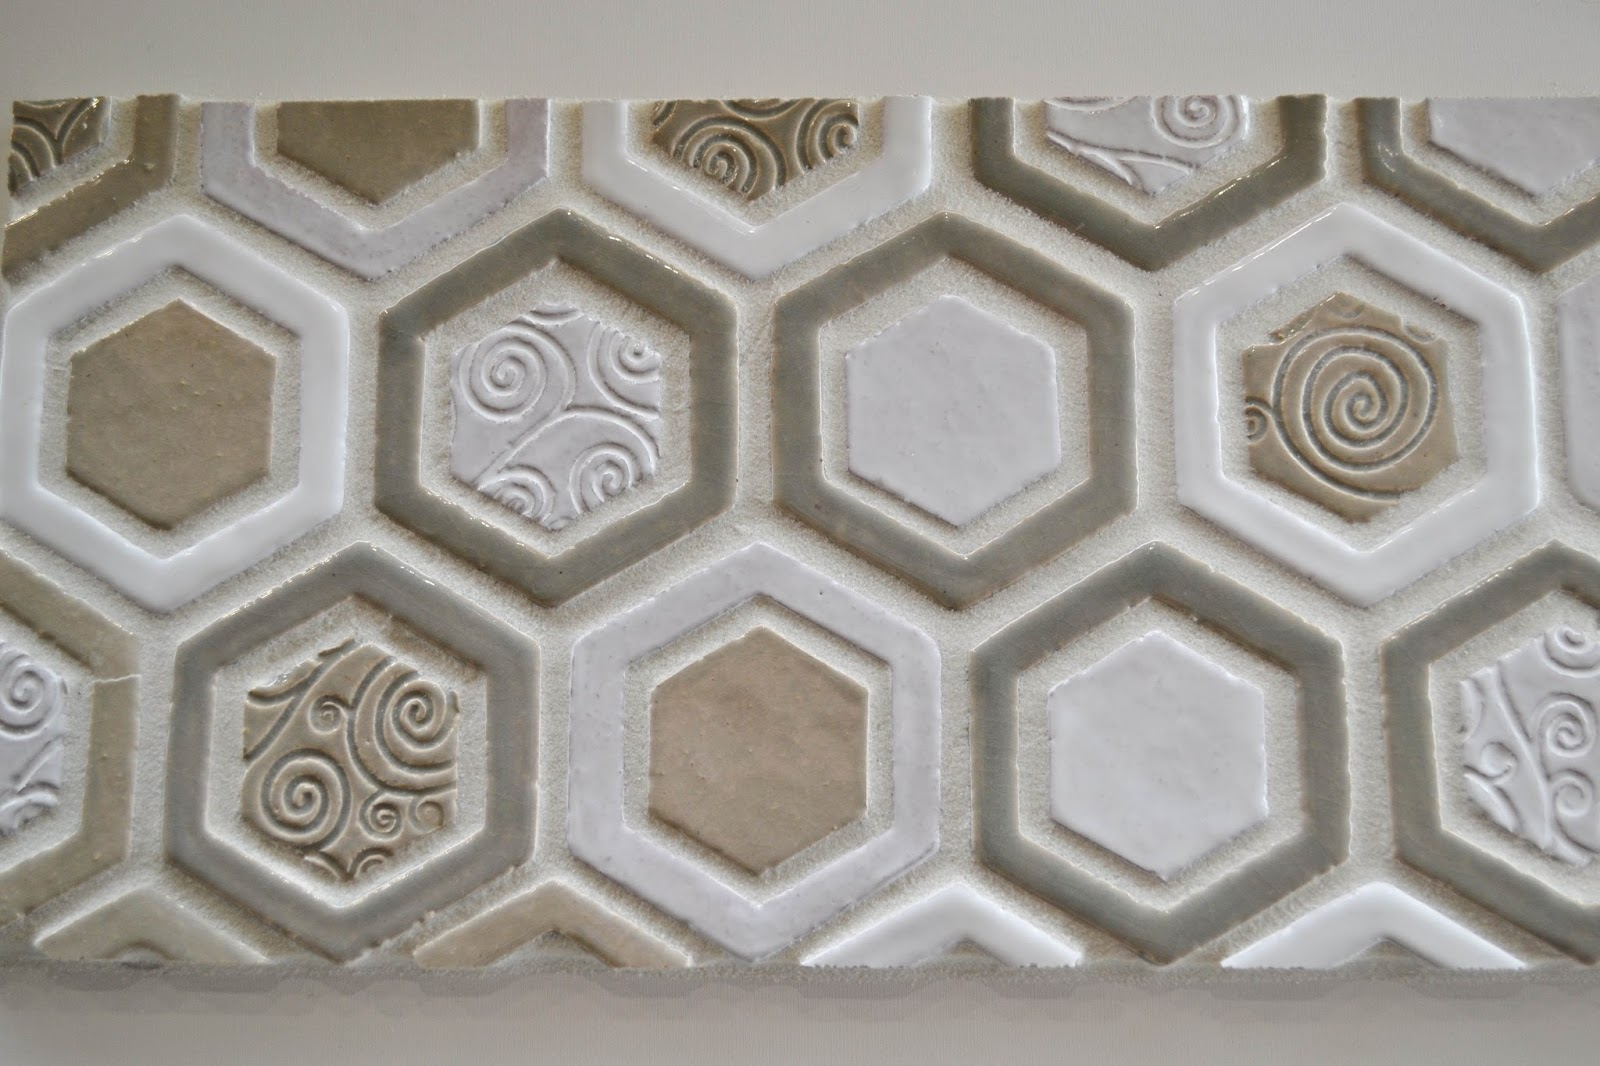 My list of pretty picks from dwell on design cozystylishchic i would use this tile in my own kitchen in a heartbeat along with the silestone altair countertop in a sueded finish that i featured in yesterdays blog dailygadgetfo Images